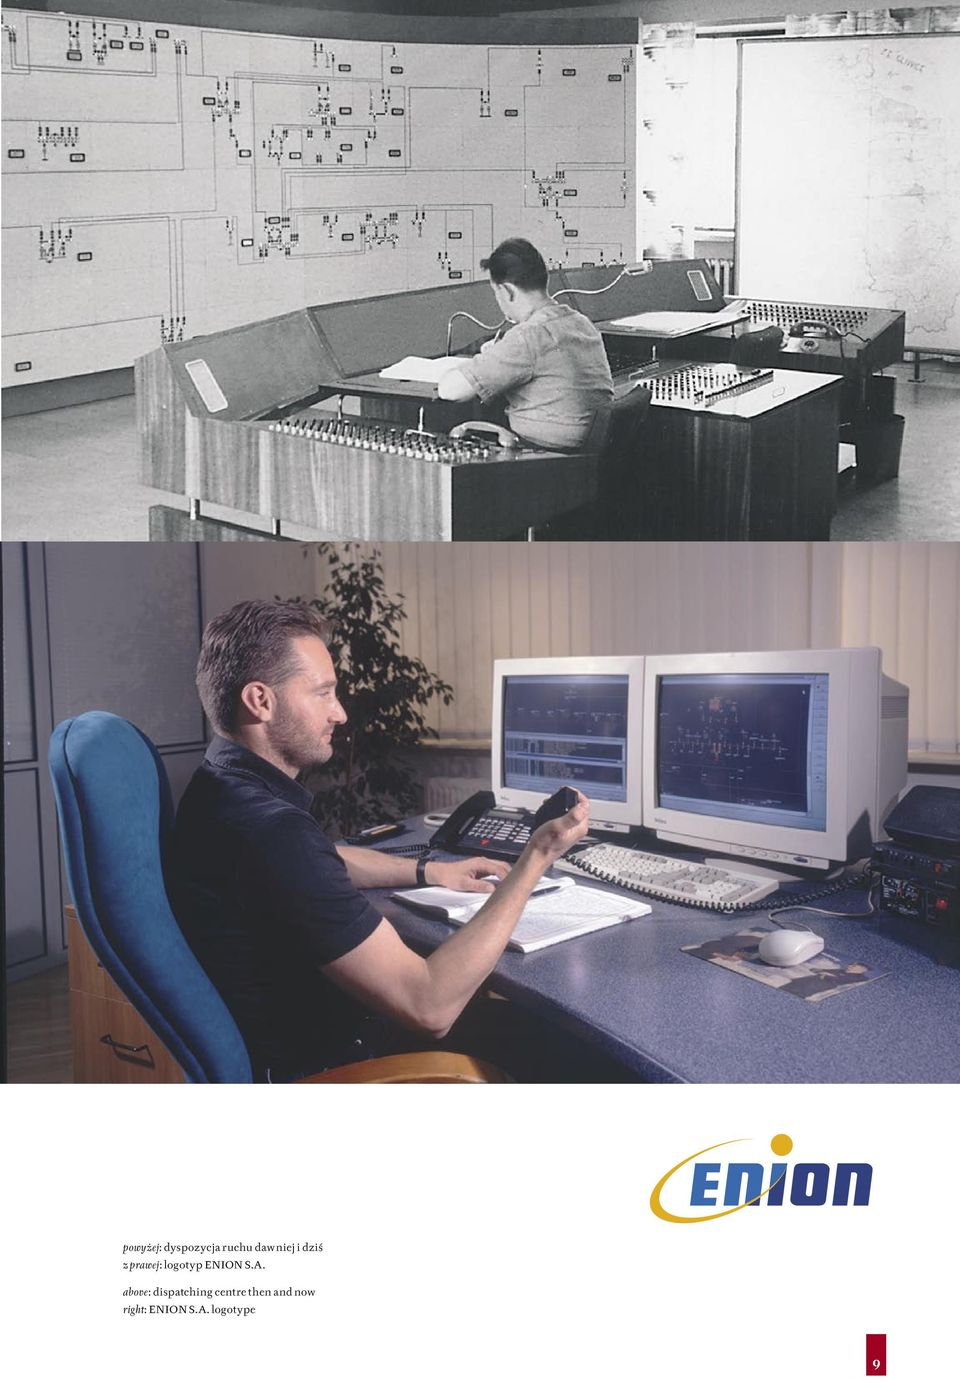 above: dispatching centre then and